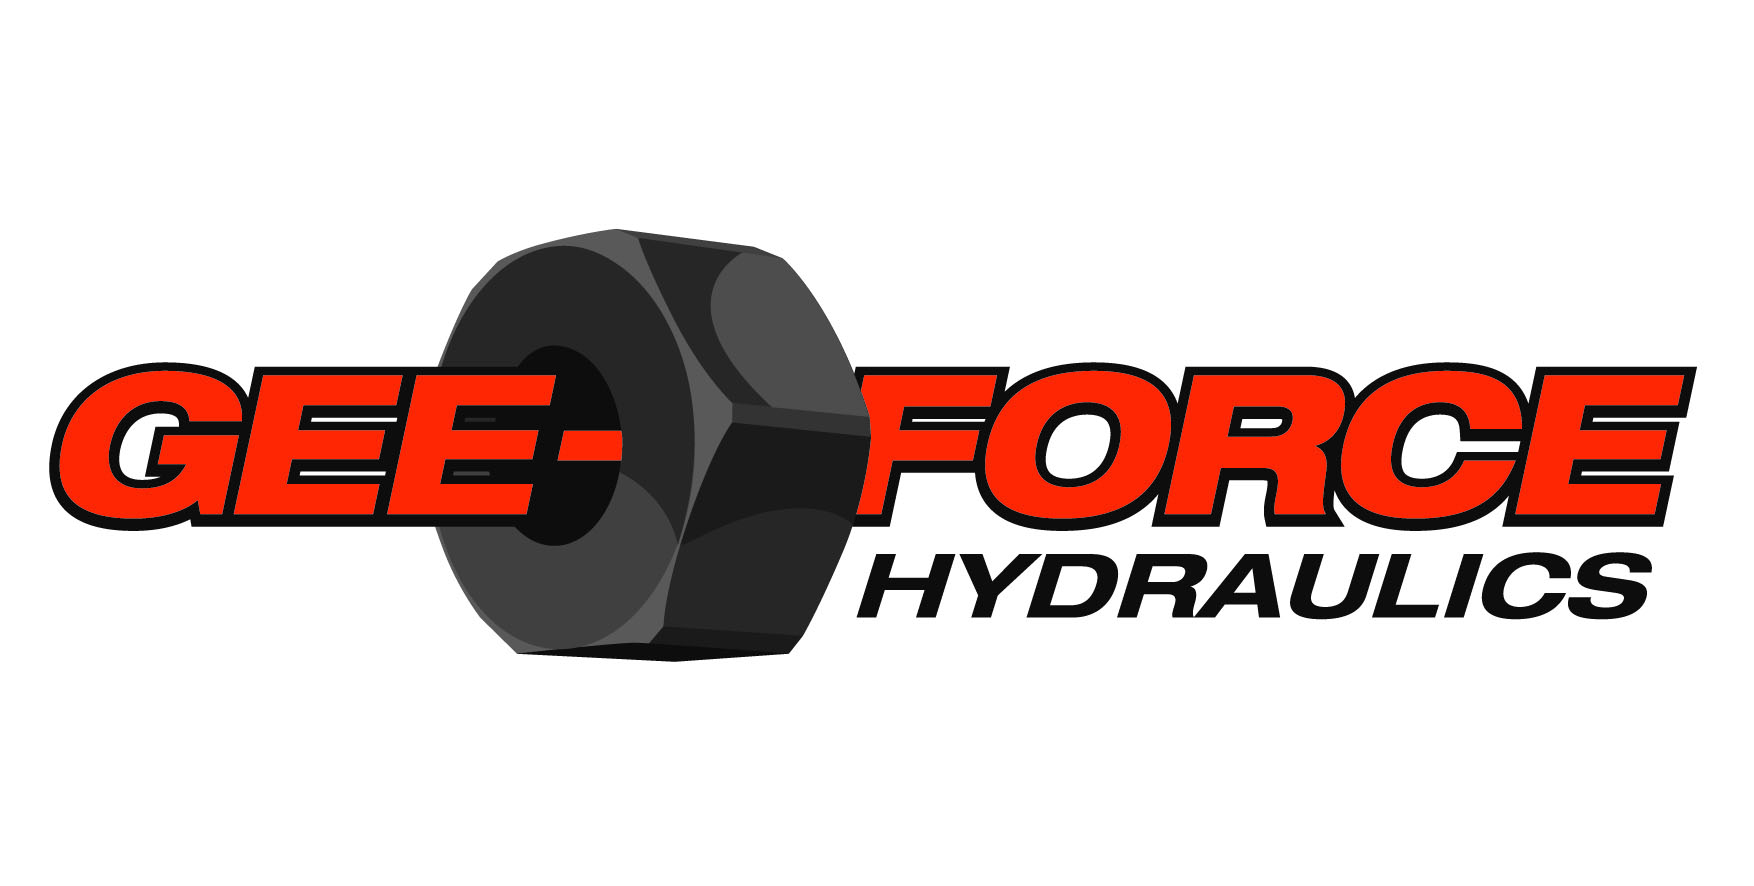 Gee- Force Hydraulics